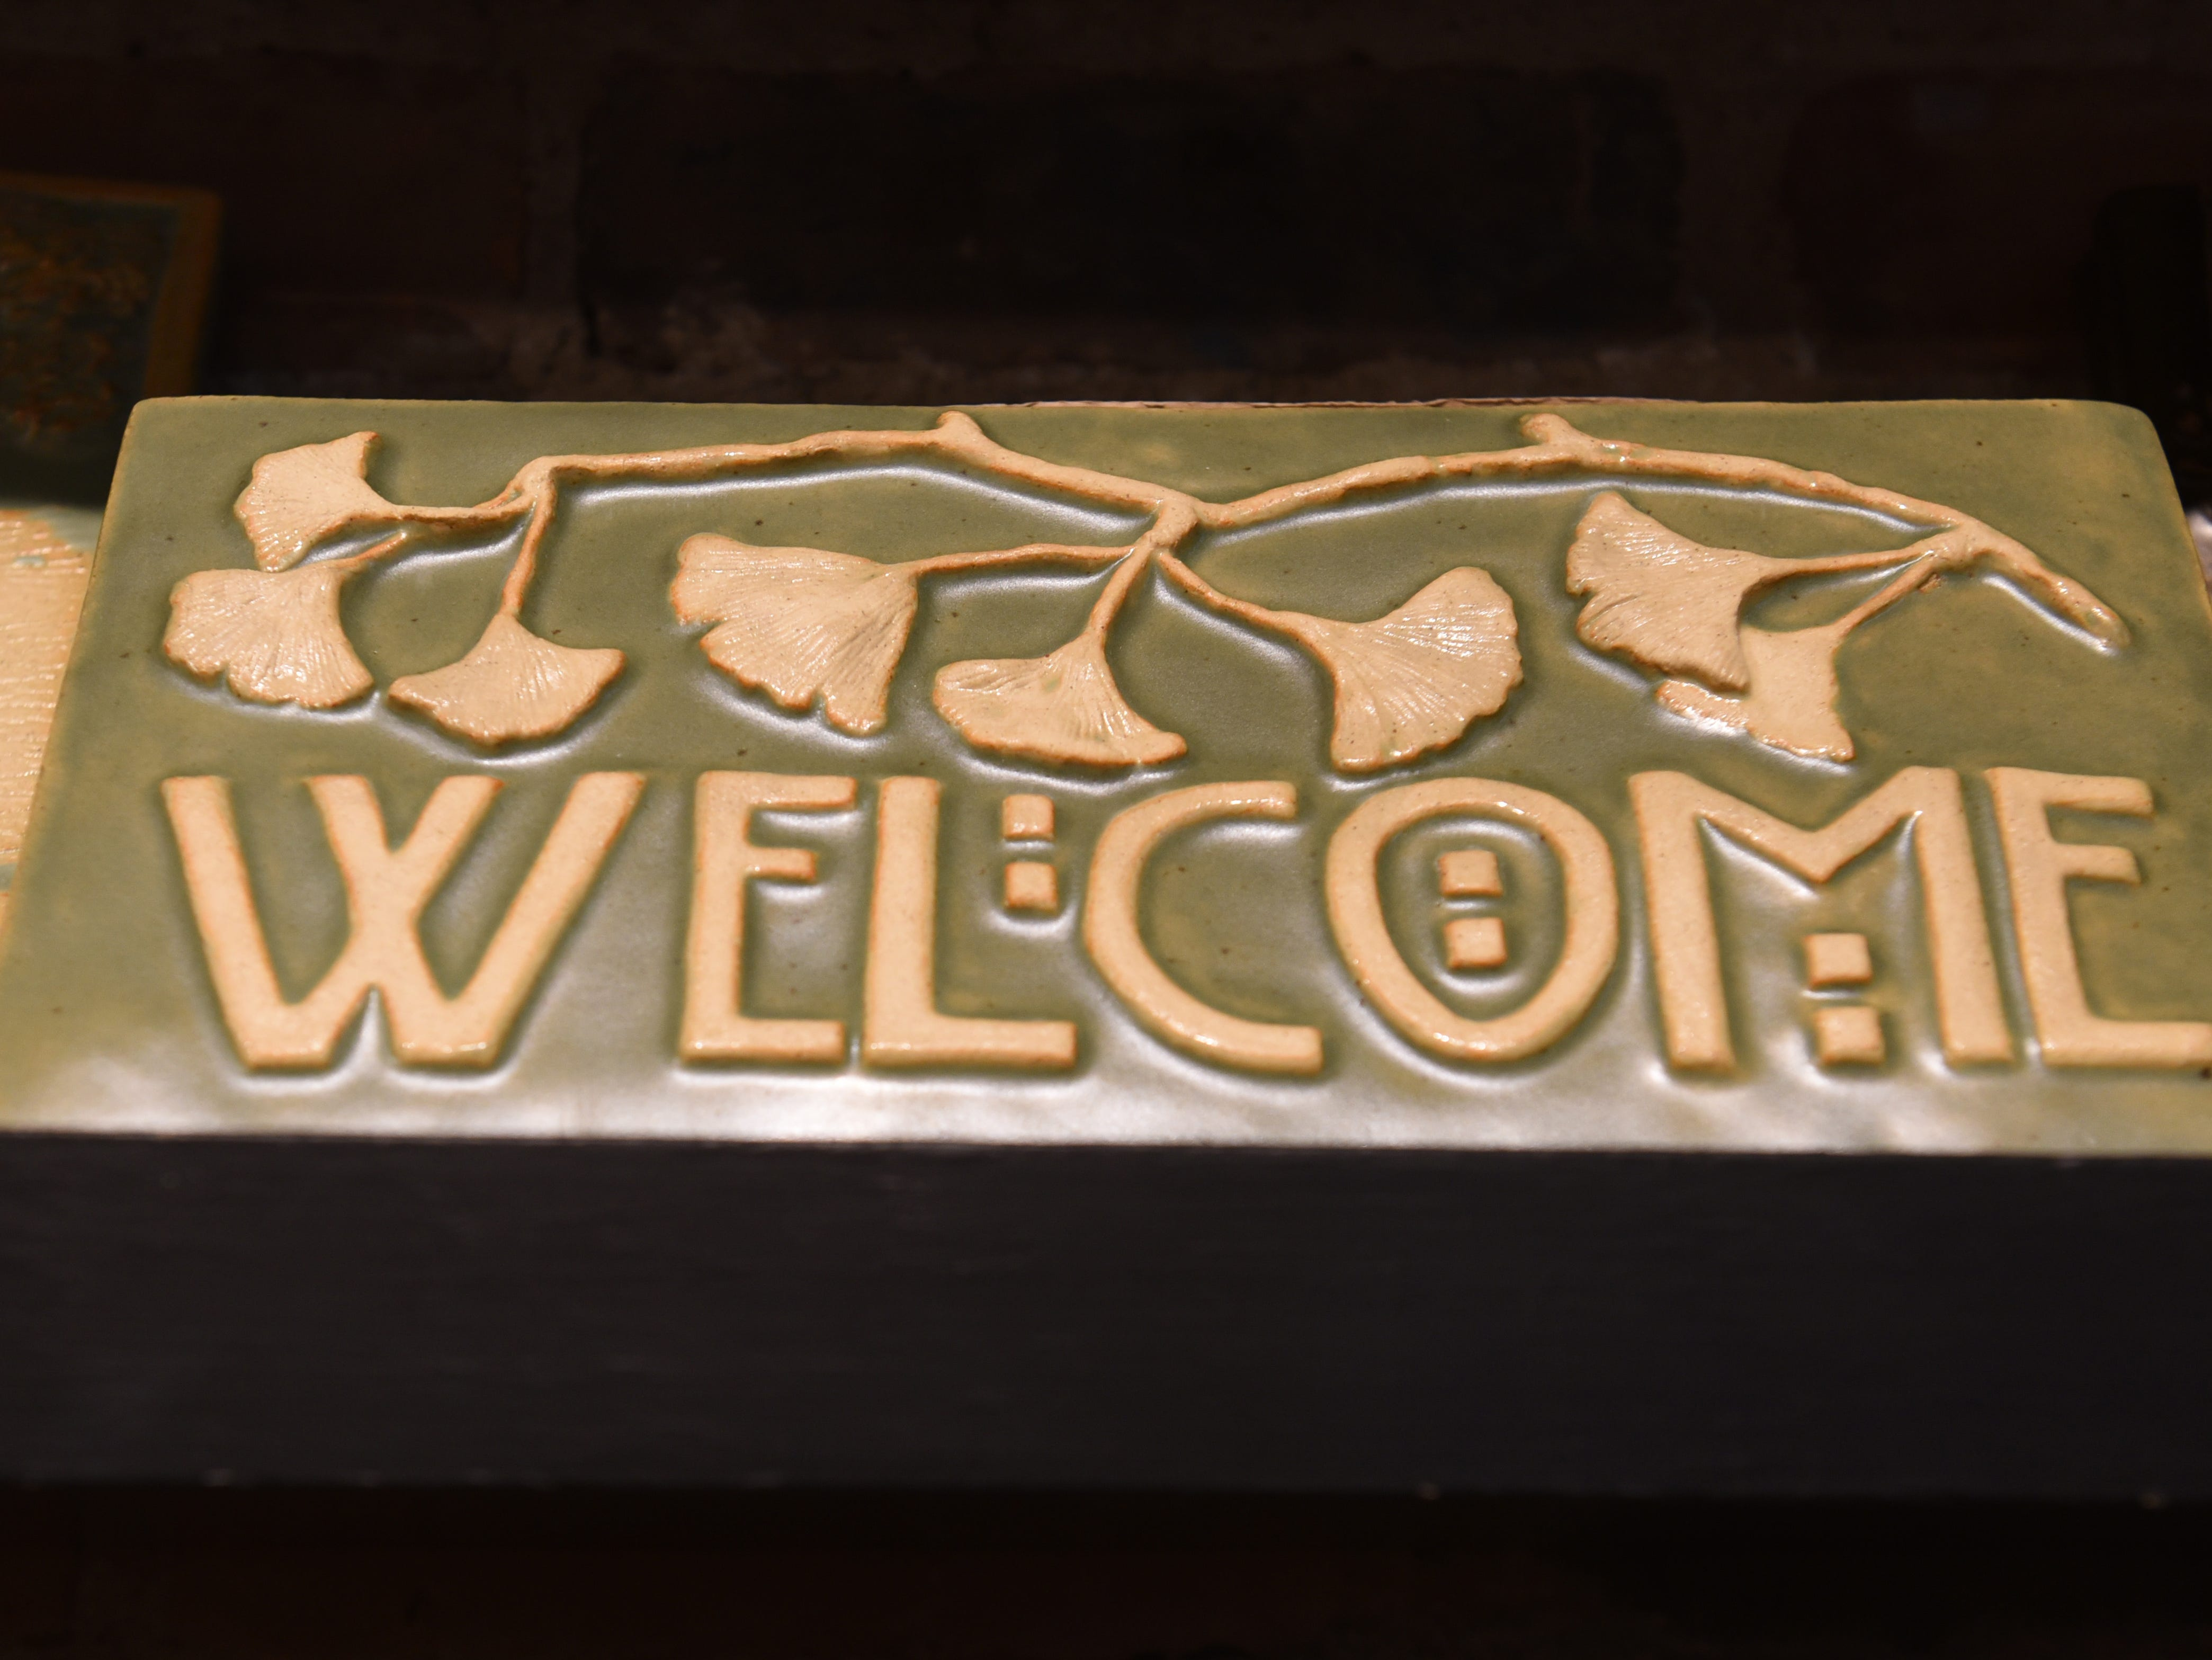 A welcome sign made at Pewabic Pottery.